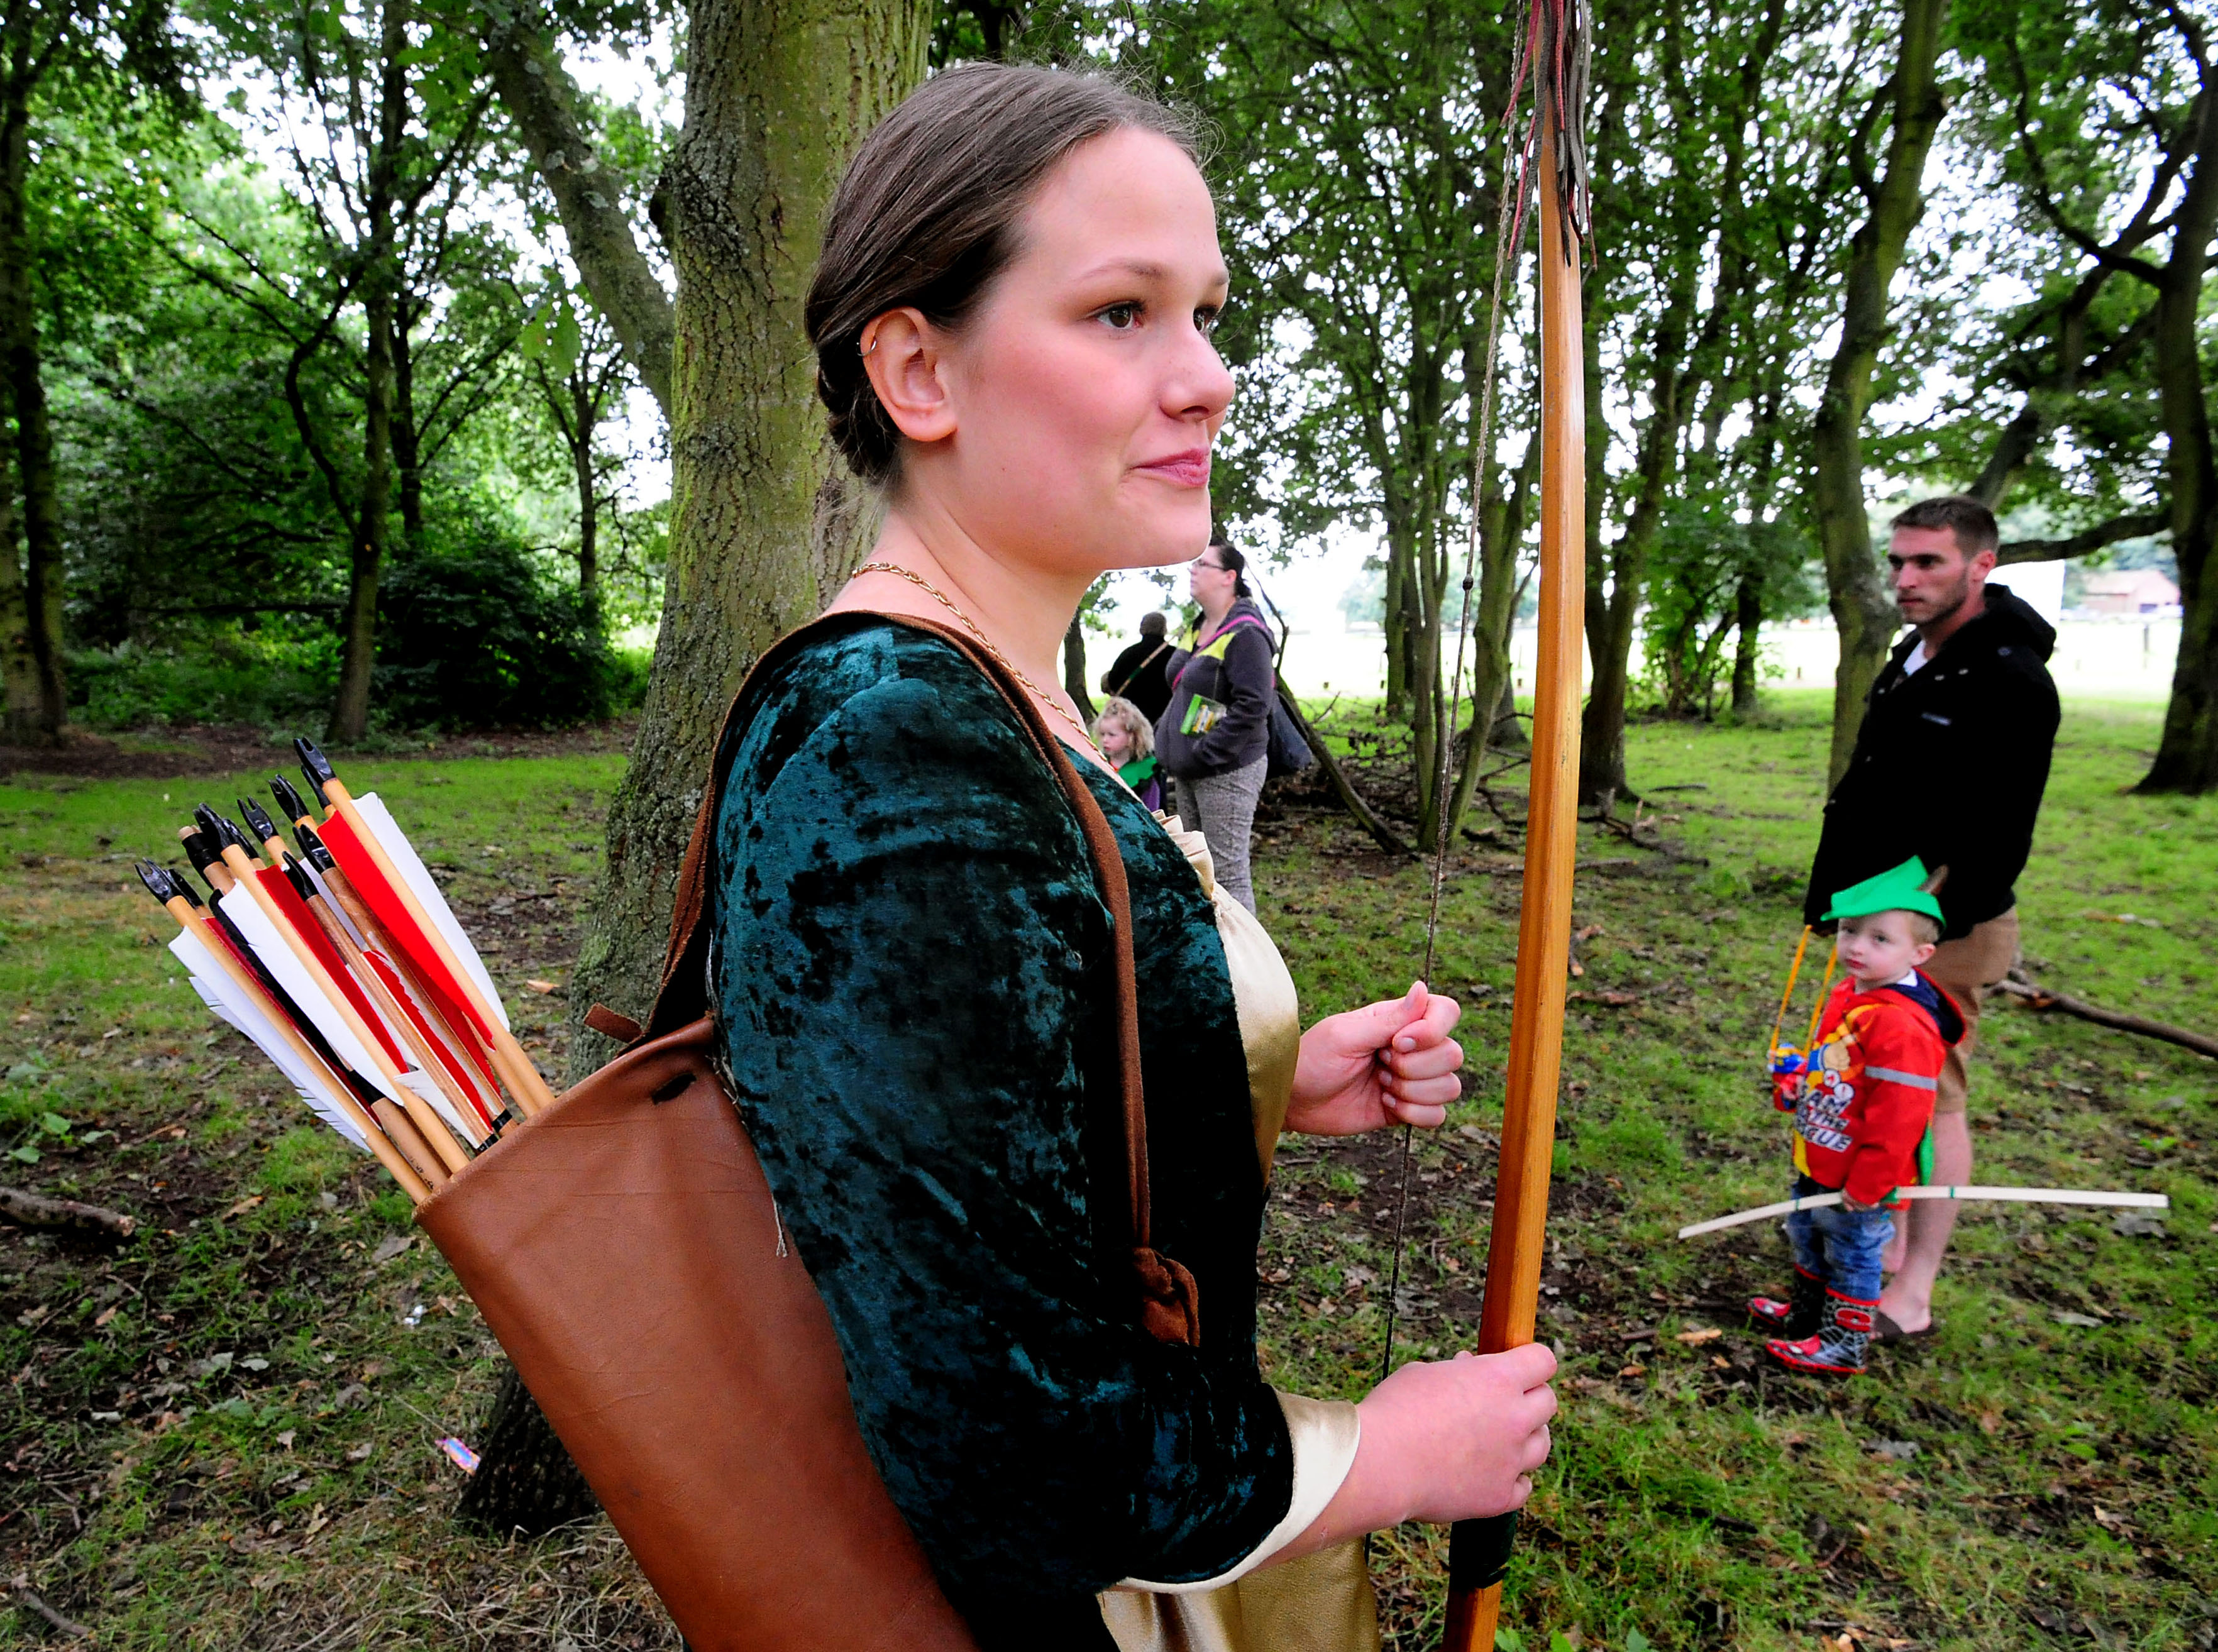 Gallery: Robin Hood Festival at Sherwood 2013